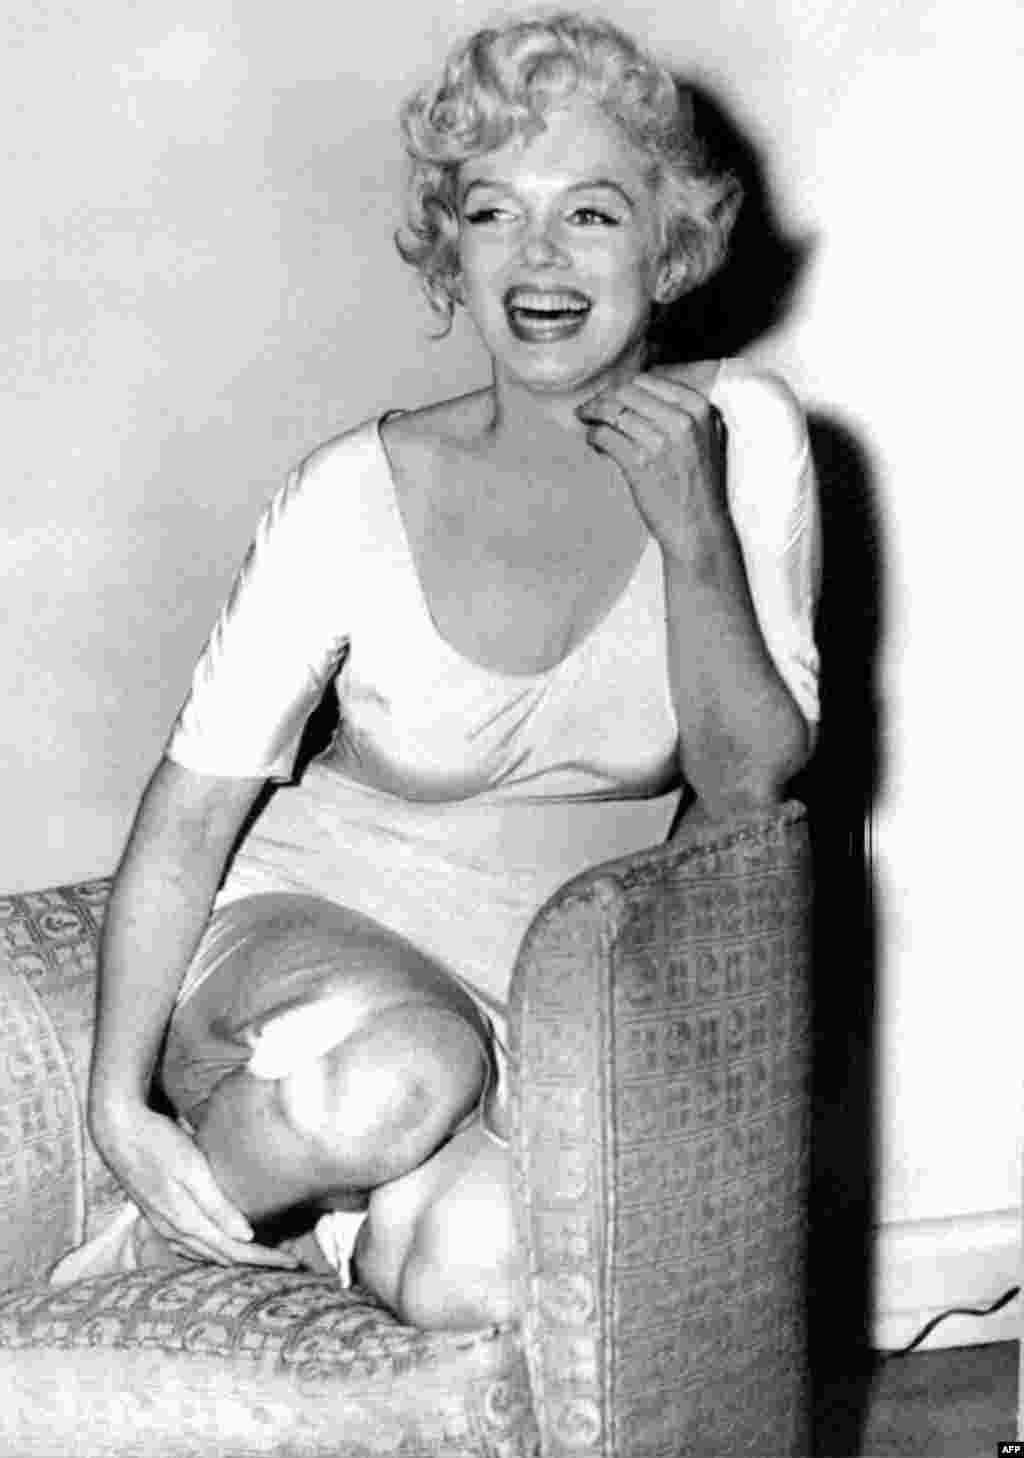 Marilyn Monroe, a few months before she died in 1962.